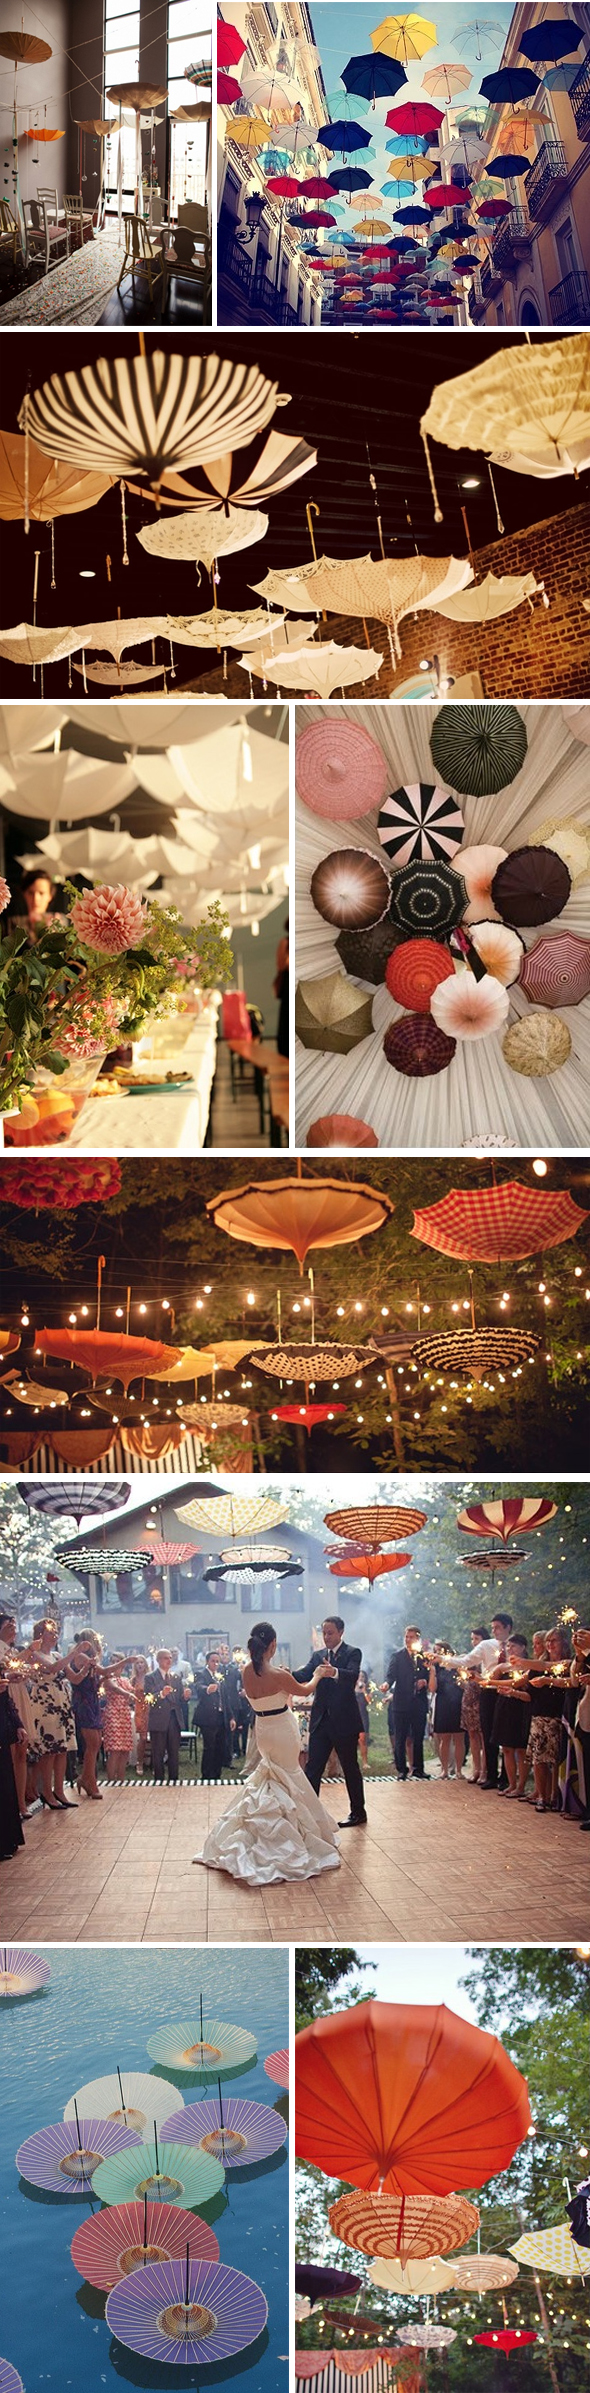 umbrella wedding decor